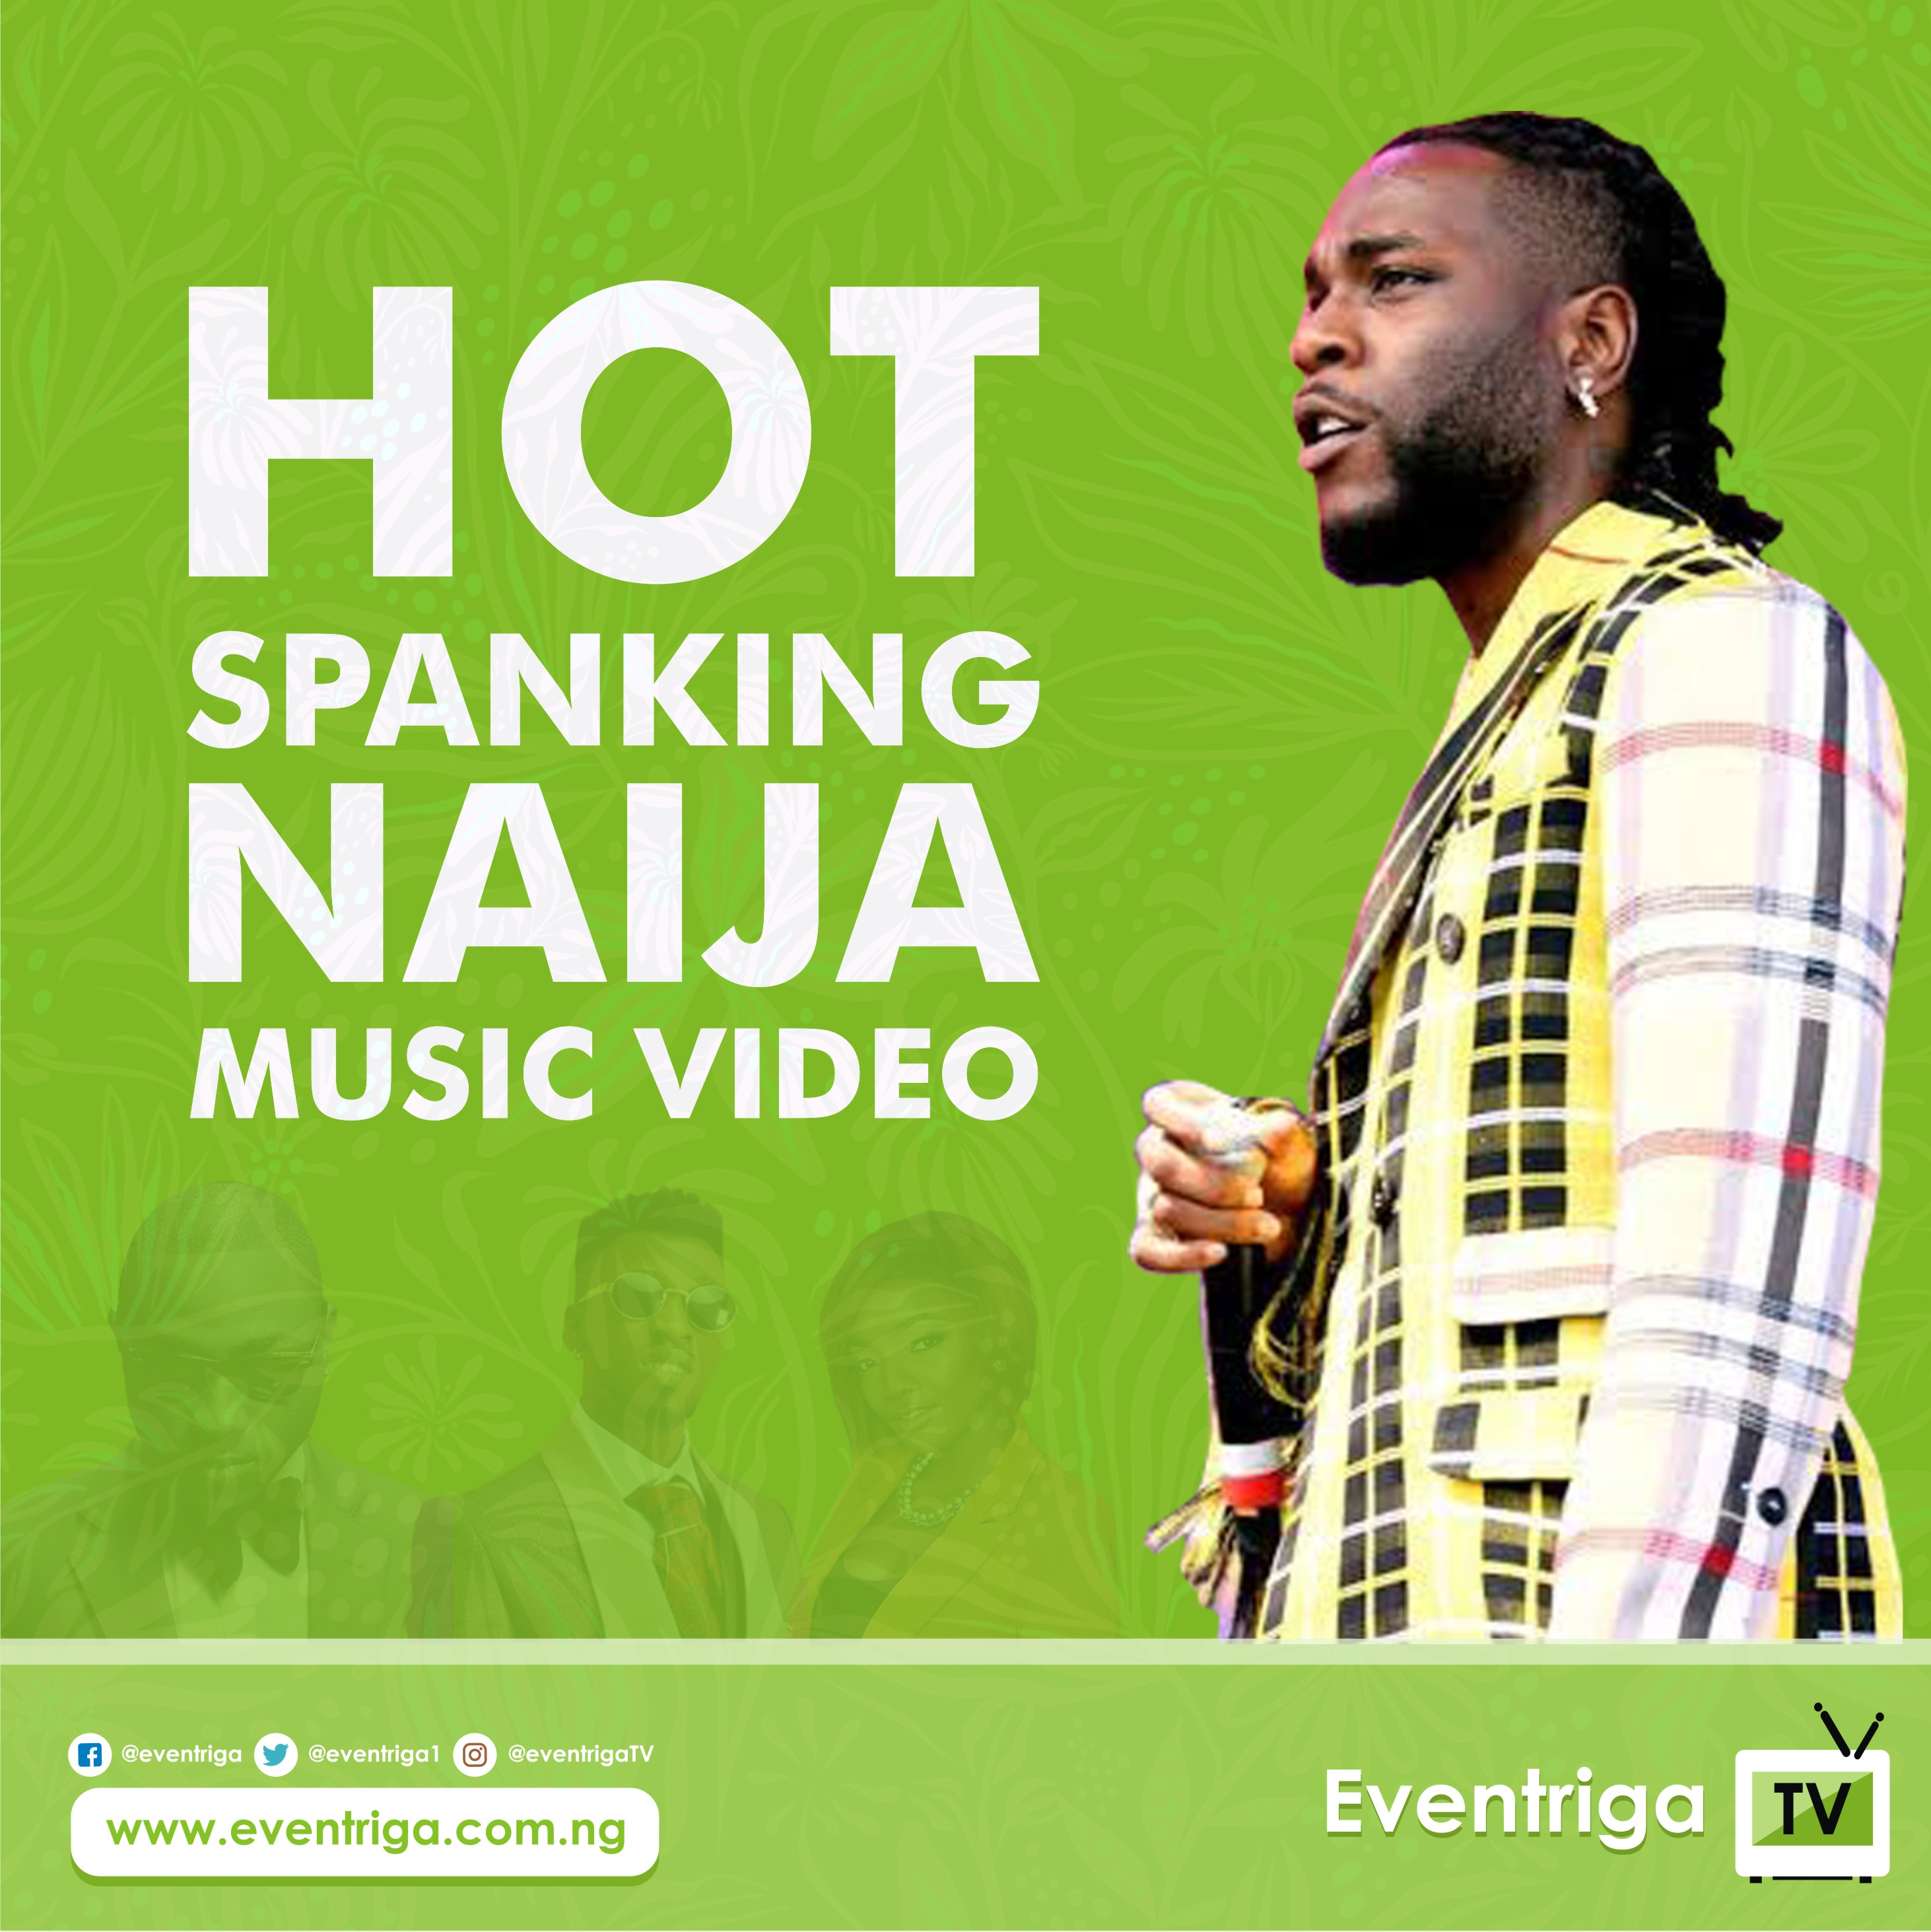 hot spanking naija music video eventriga tv